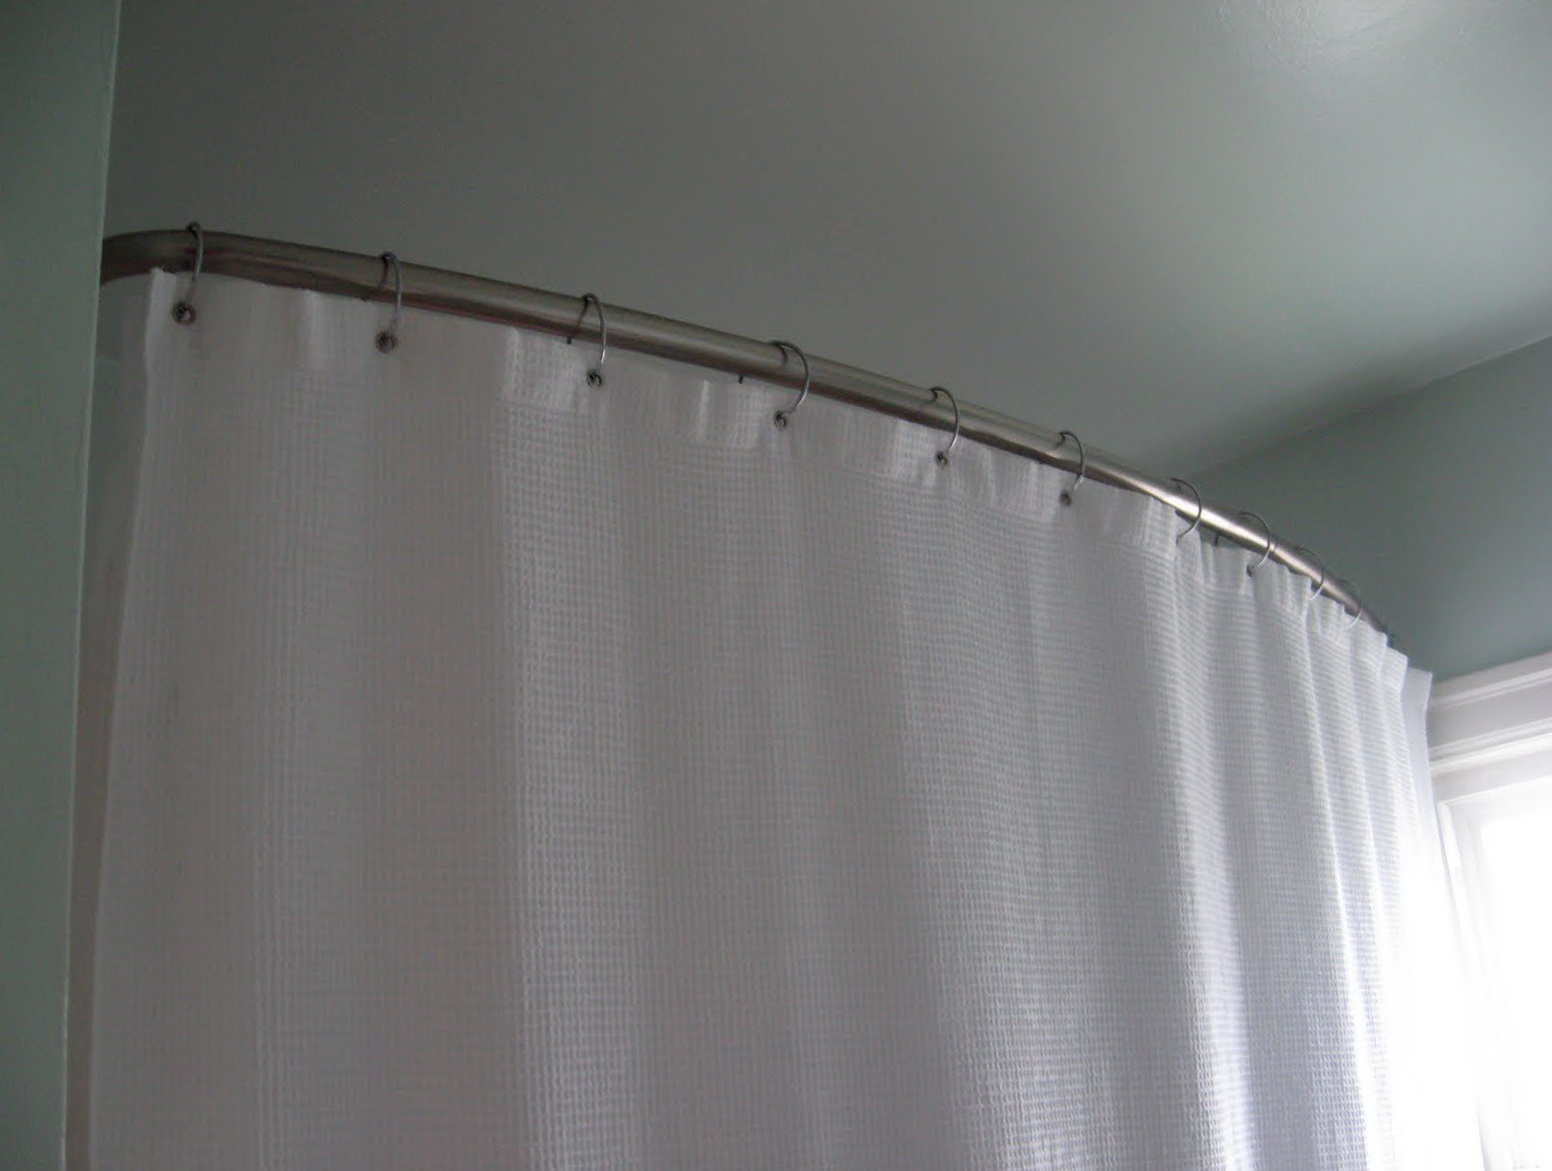 Spring Loaded Curtain Rods Home Depot Home Design Ideas